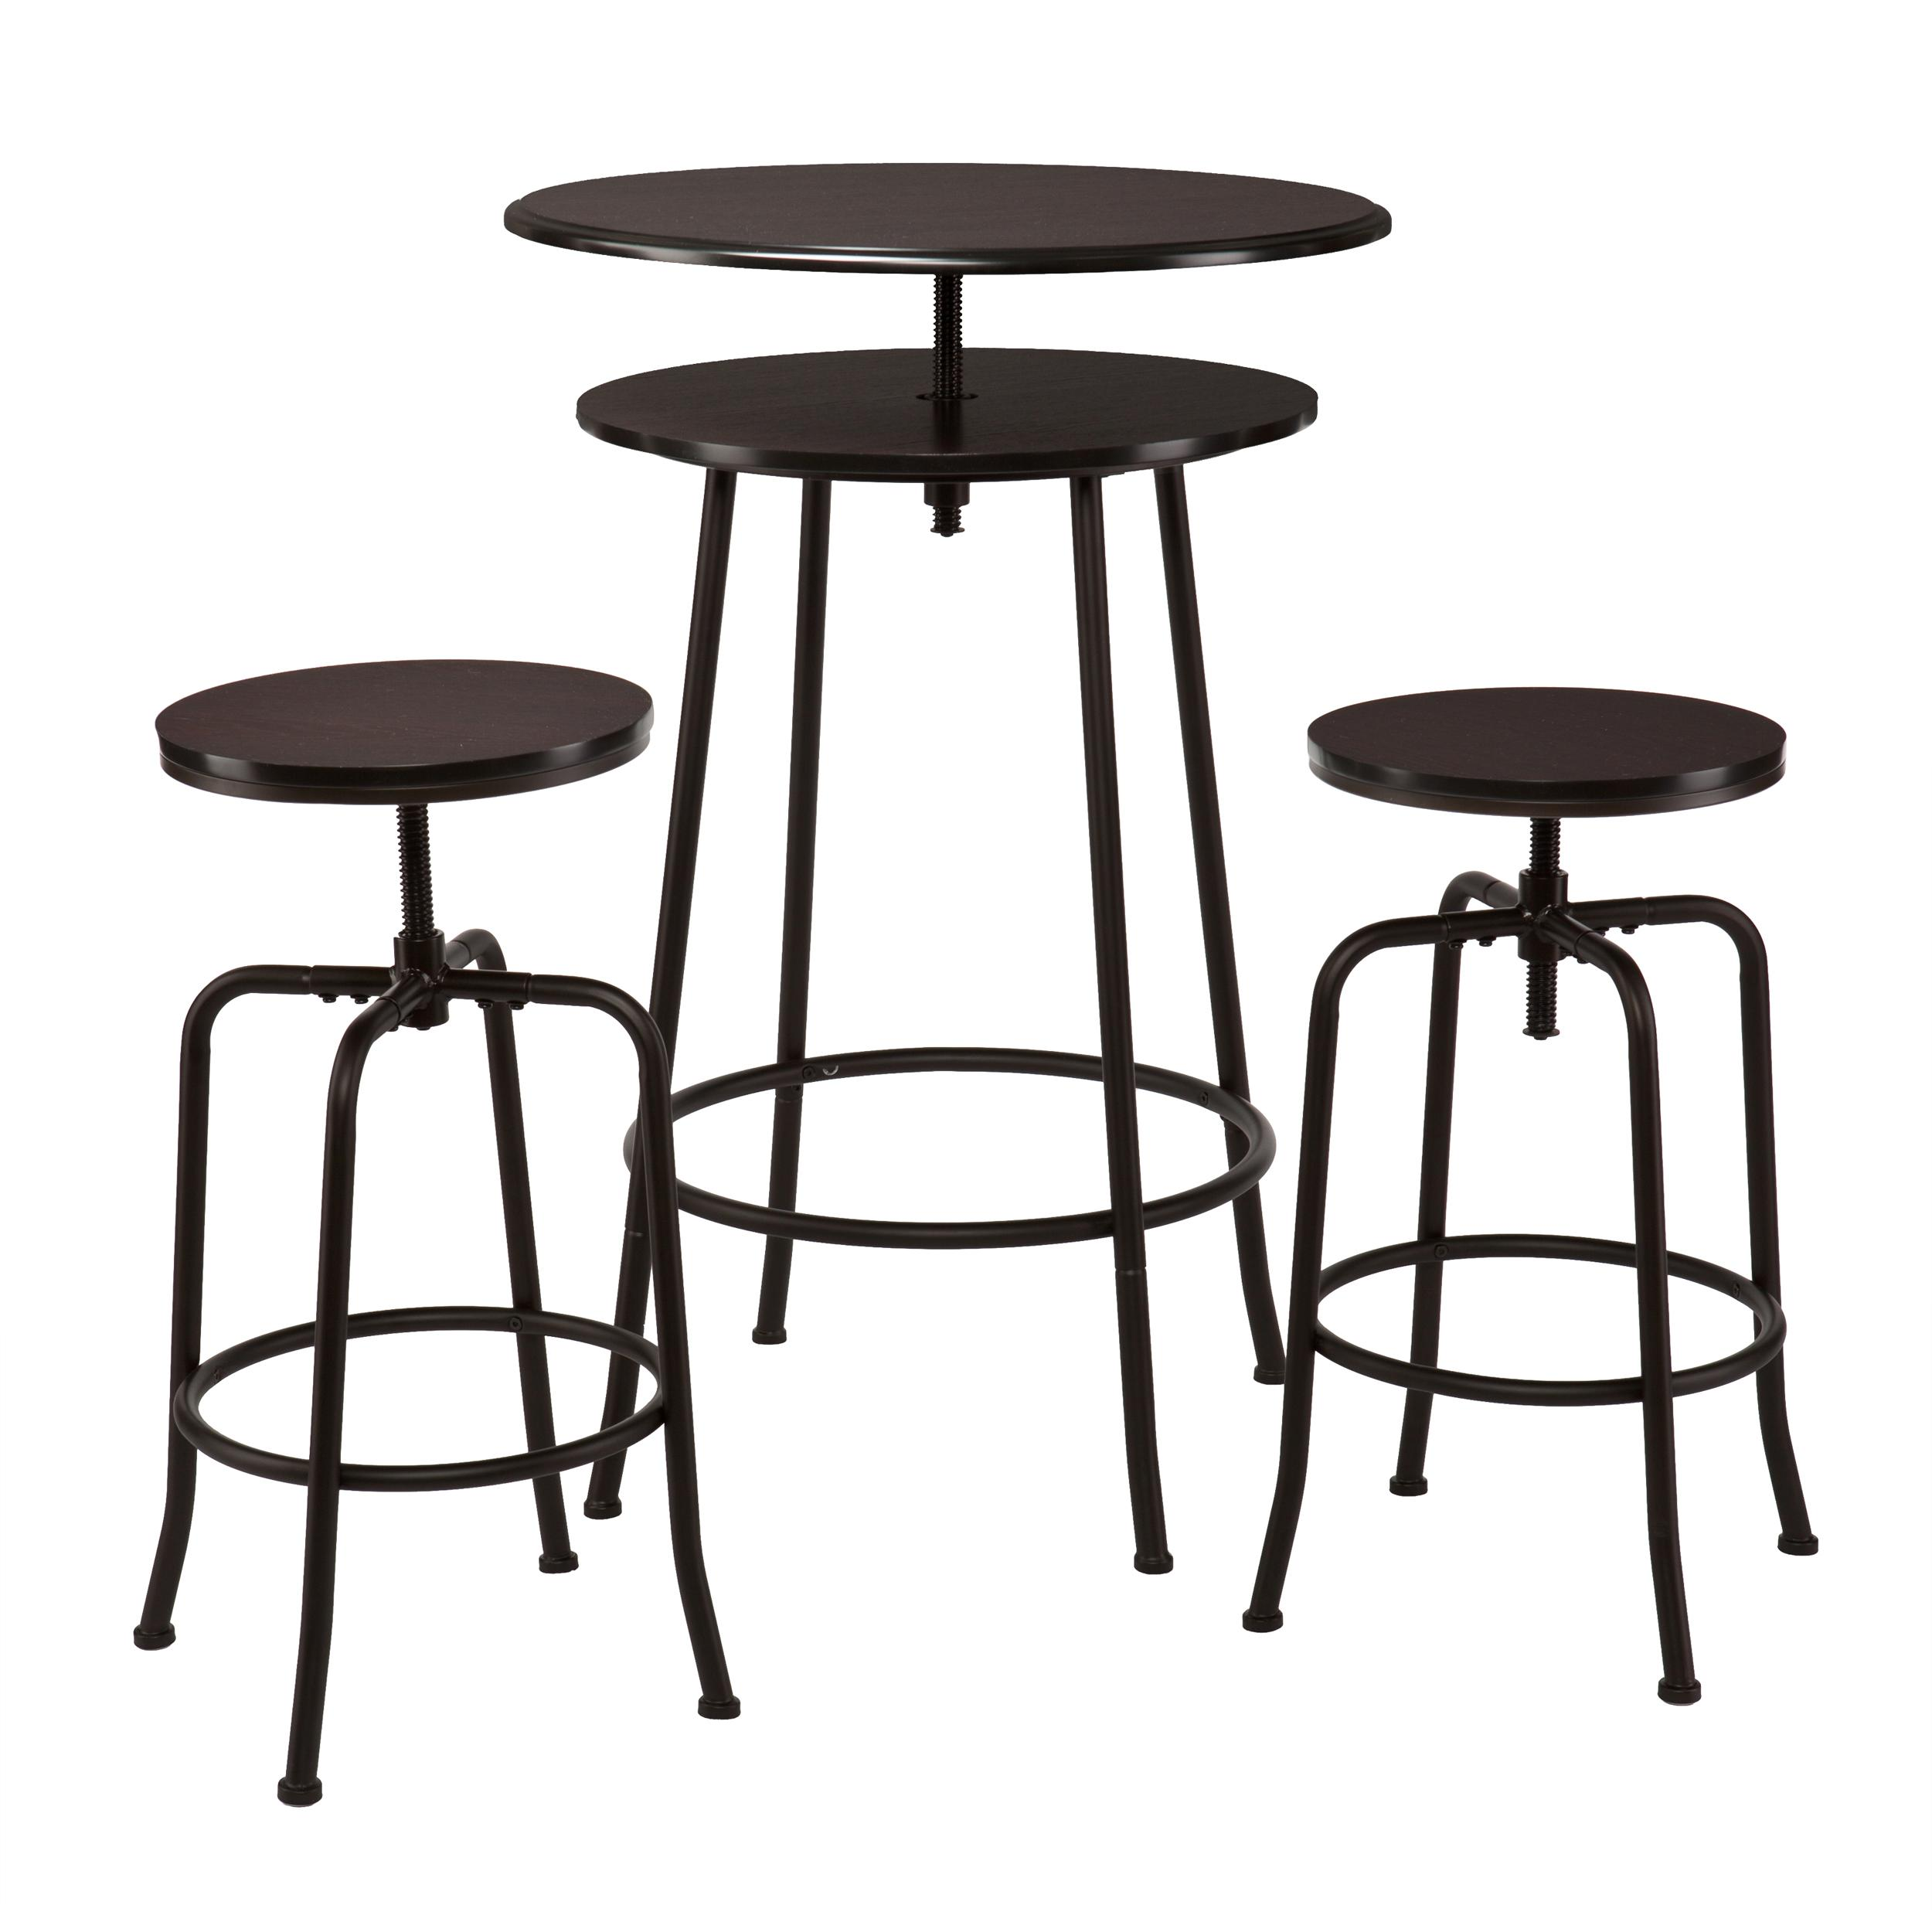 amazoncom holly  martin kalomar pc adjustable pub table  - view larger